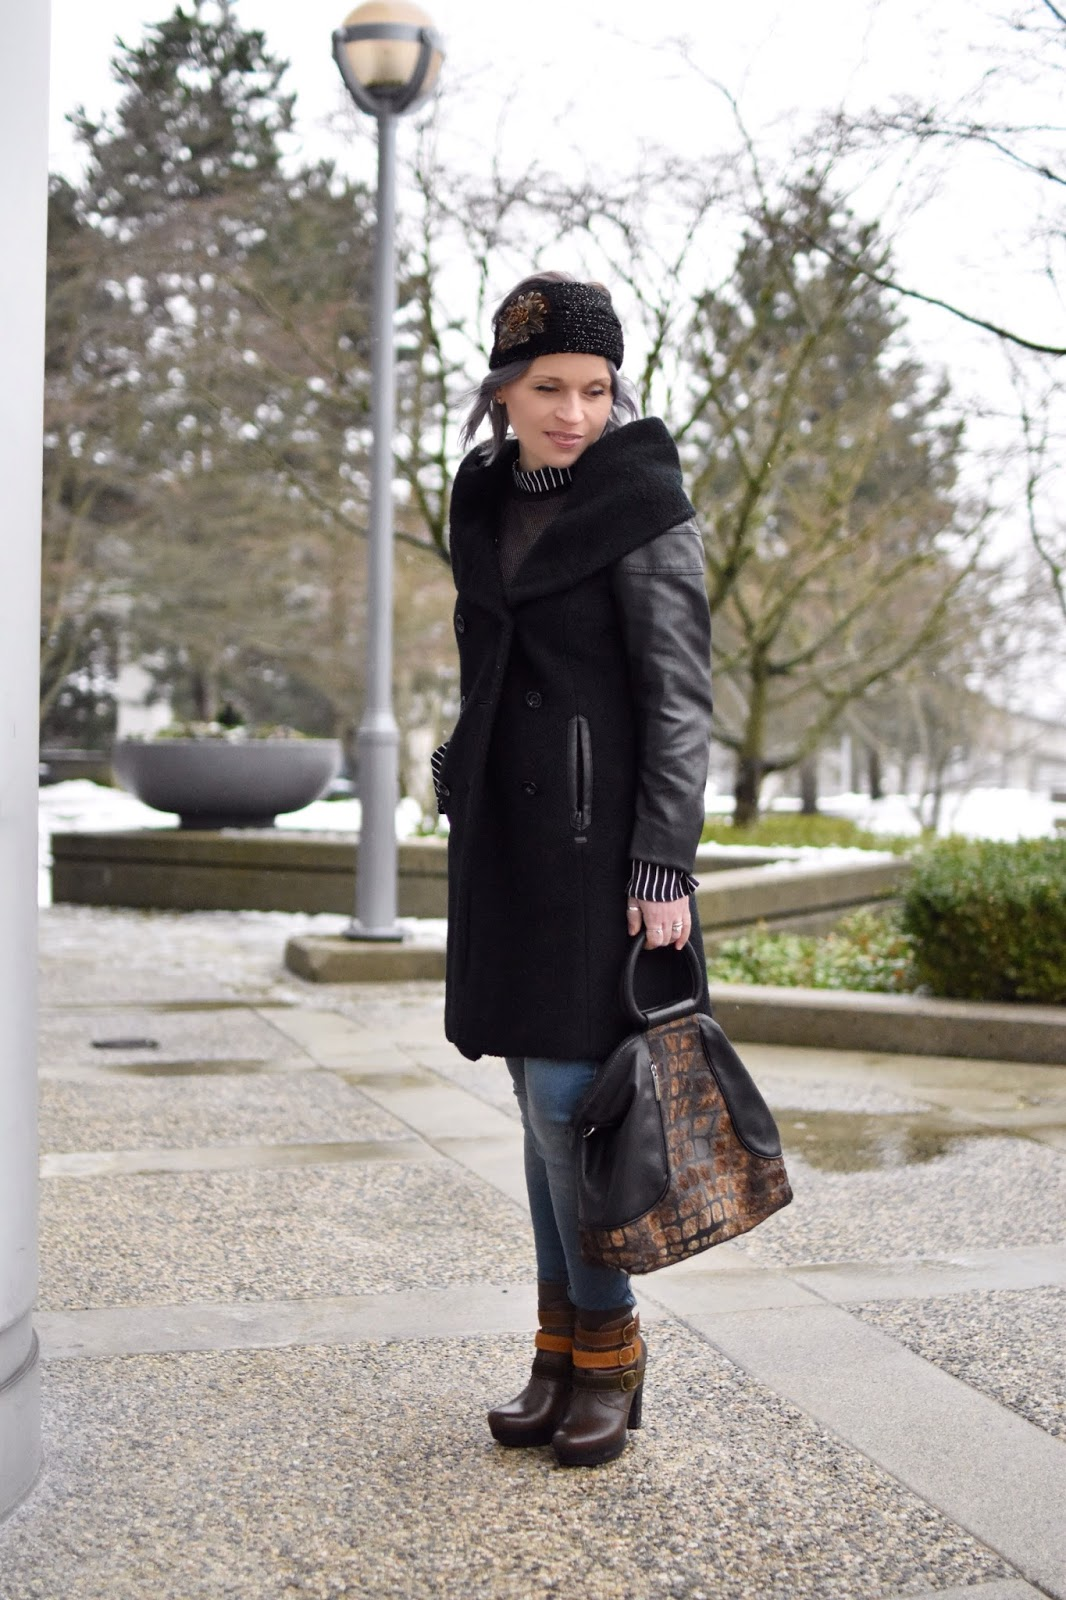 Monika Faulkner outfit inspiration - styling a shawl-collar coat with skinny jeans, platform booties, and a feather-embellished headband